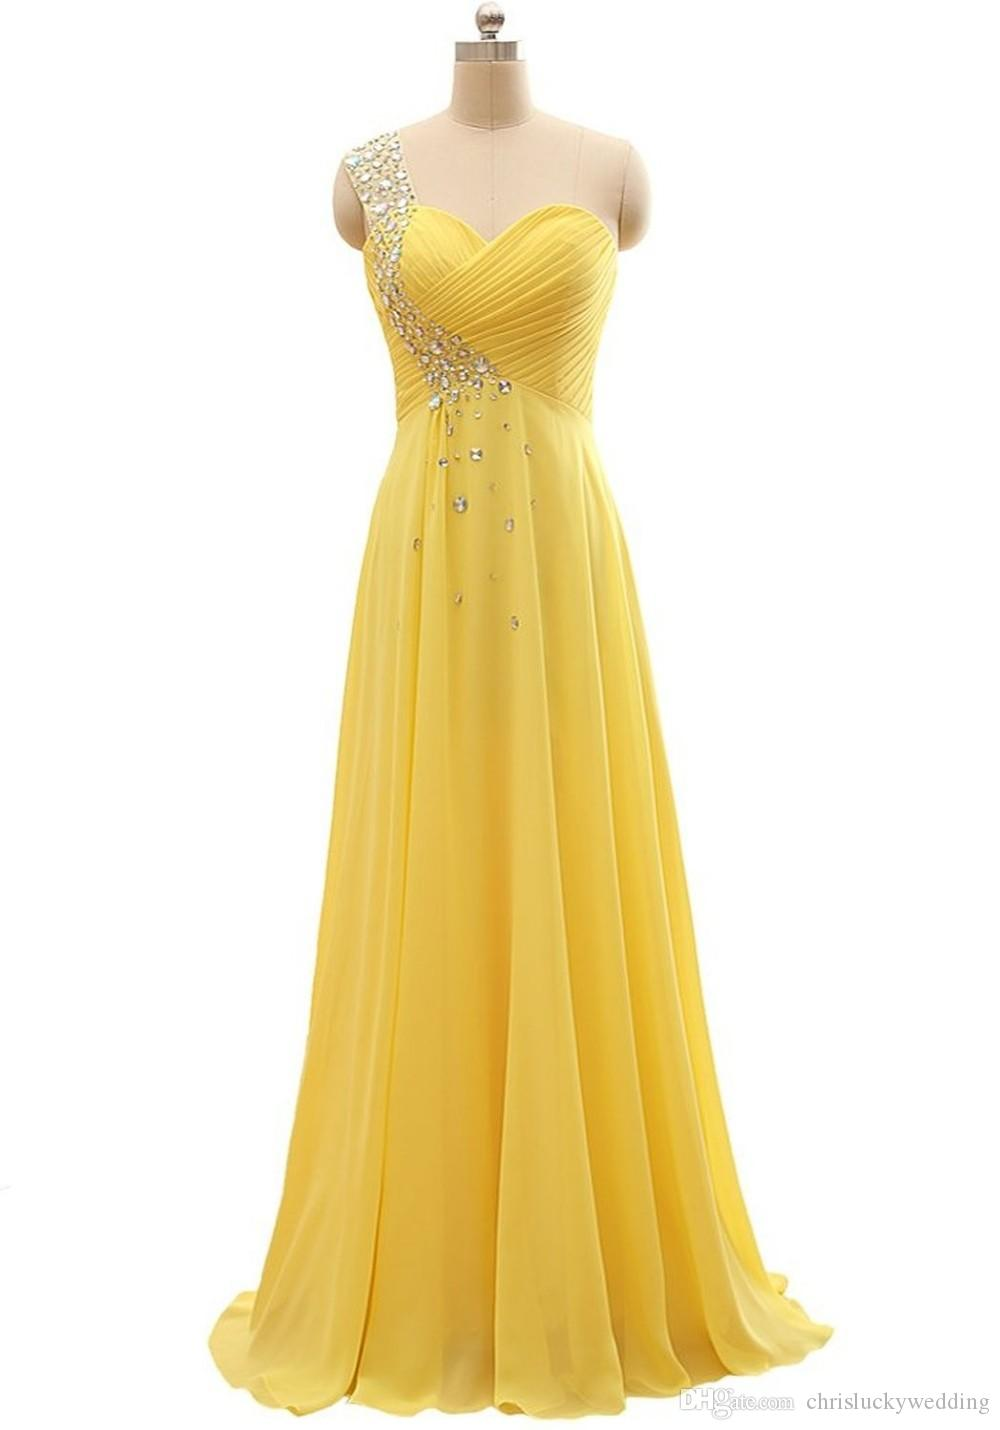 2017 yellow one shoulder chiffon bridesmaid dresses sleeveless 2017 yellow one shoulder chiffon bridesmaid dresses sleeveless custom formal beach maid of honor prom evening party gowns brides maid dress bridesmaid ombrellifo Gallery